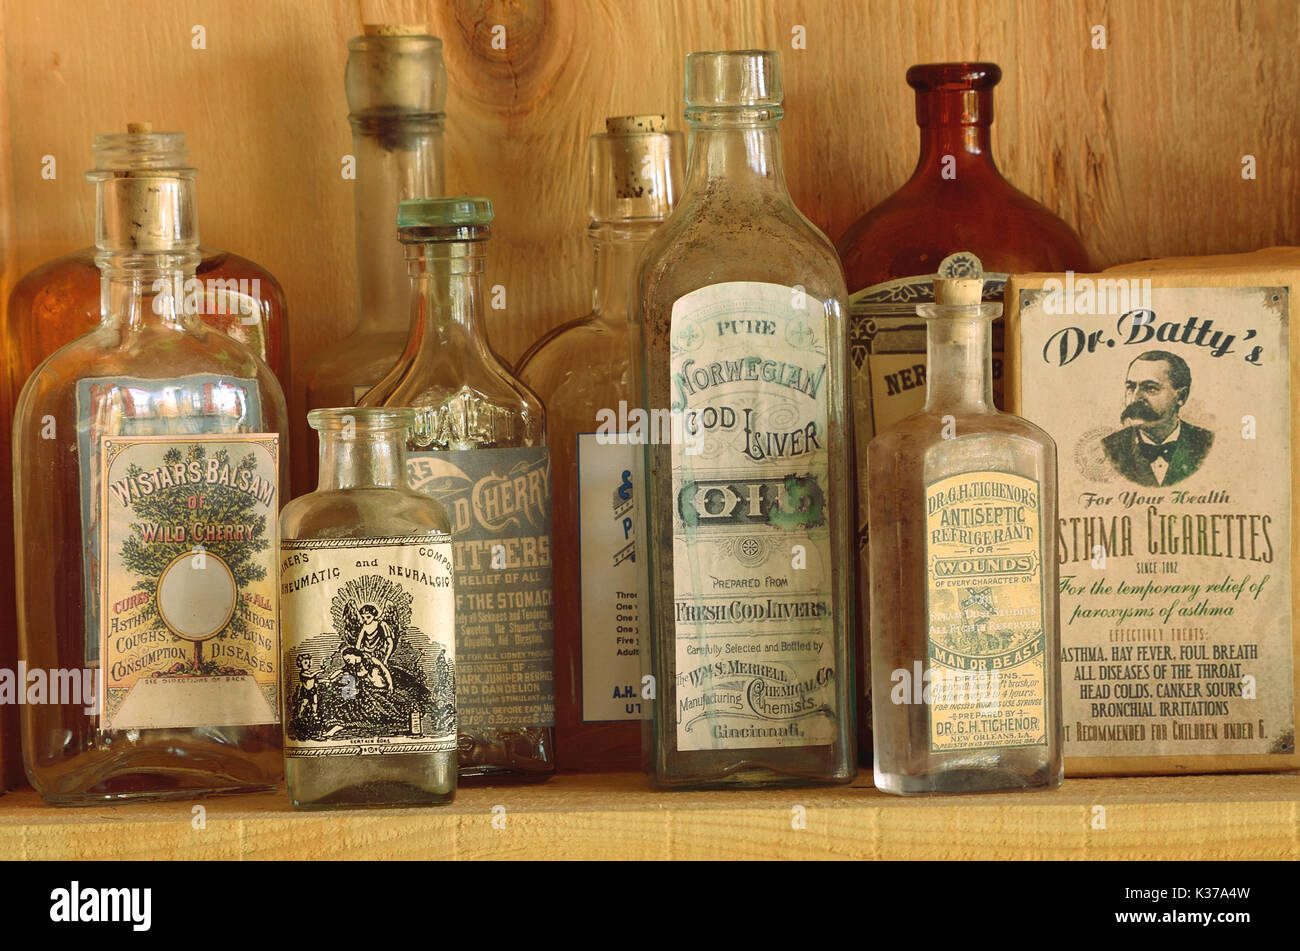 Antique medicine bottles with vintage labels with details about their  contents